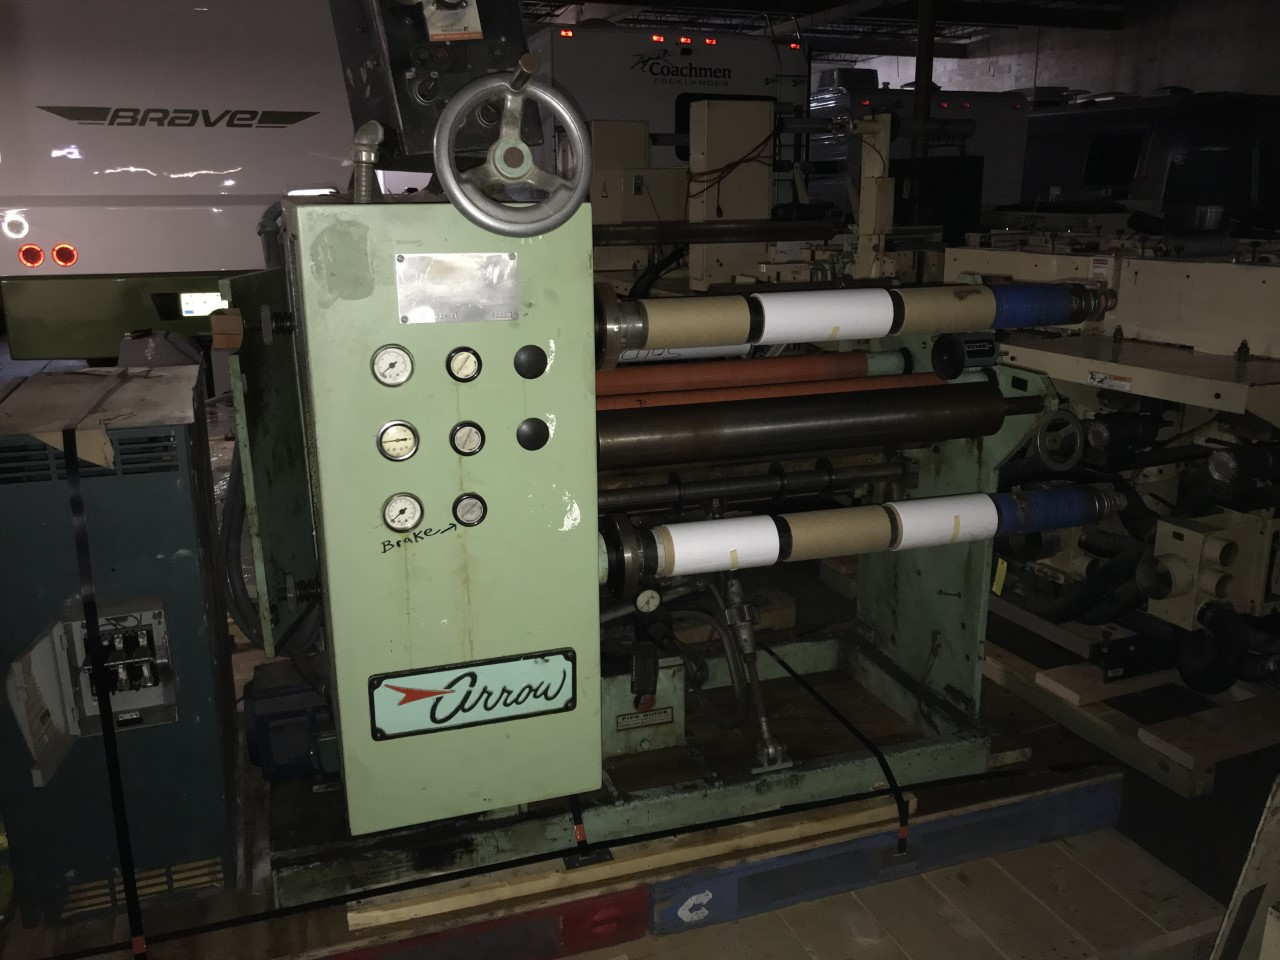 Arrow Model 325-21 - Used Flexo Printing Presses and Used Flexographic Equipment-1